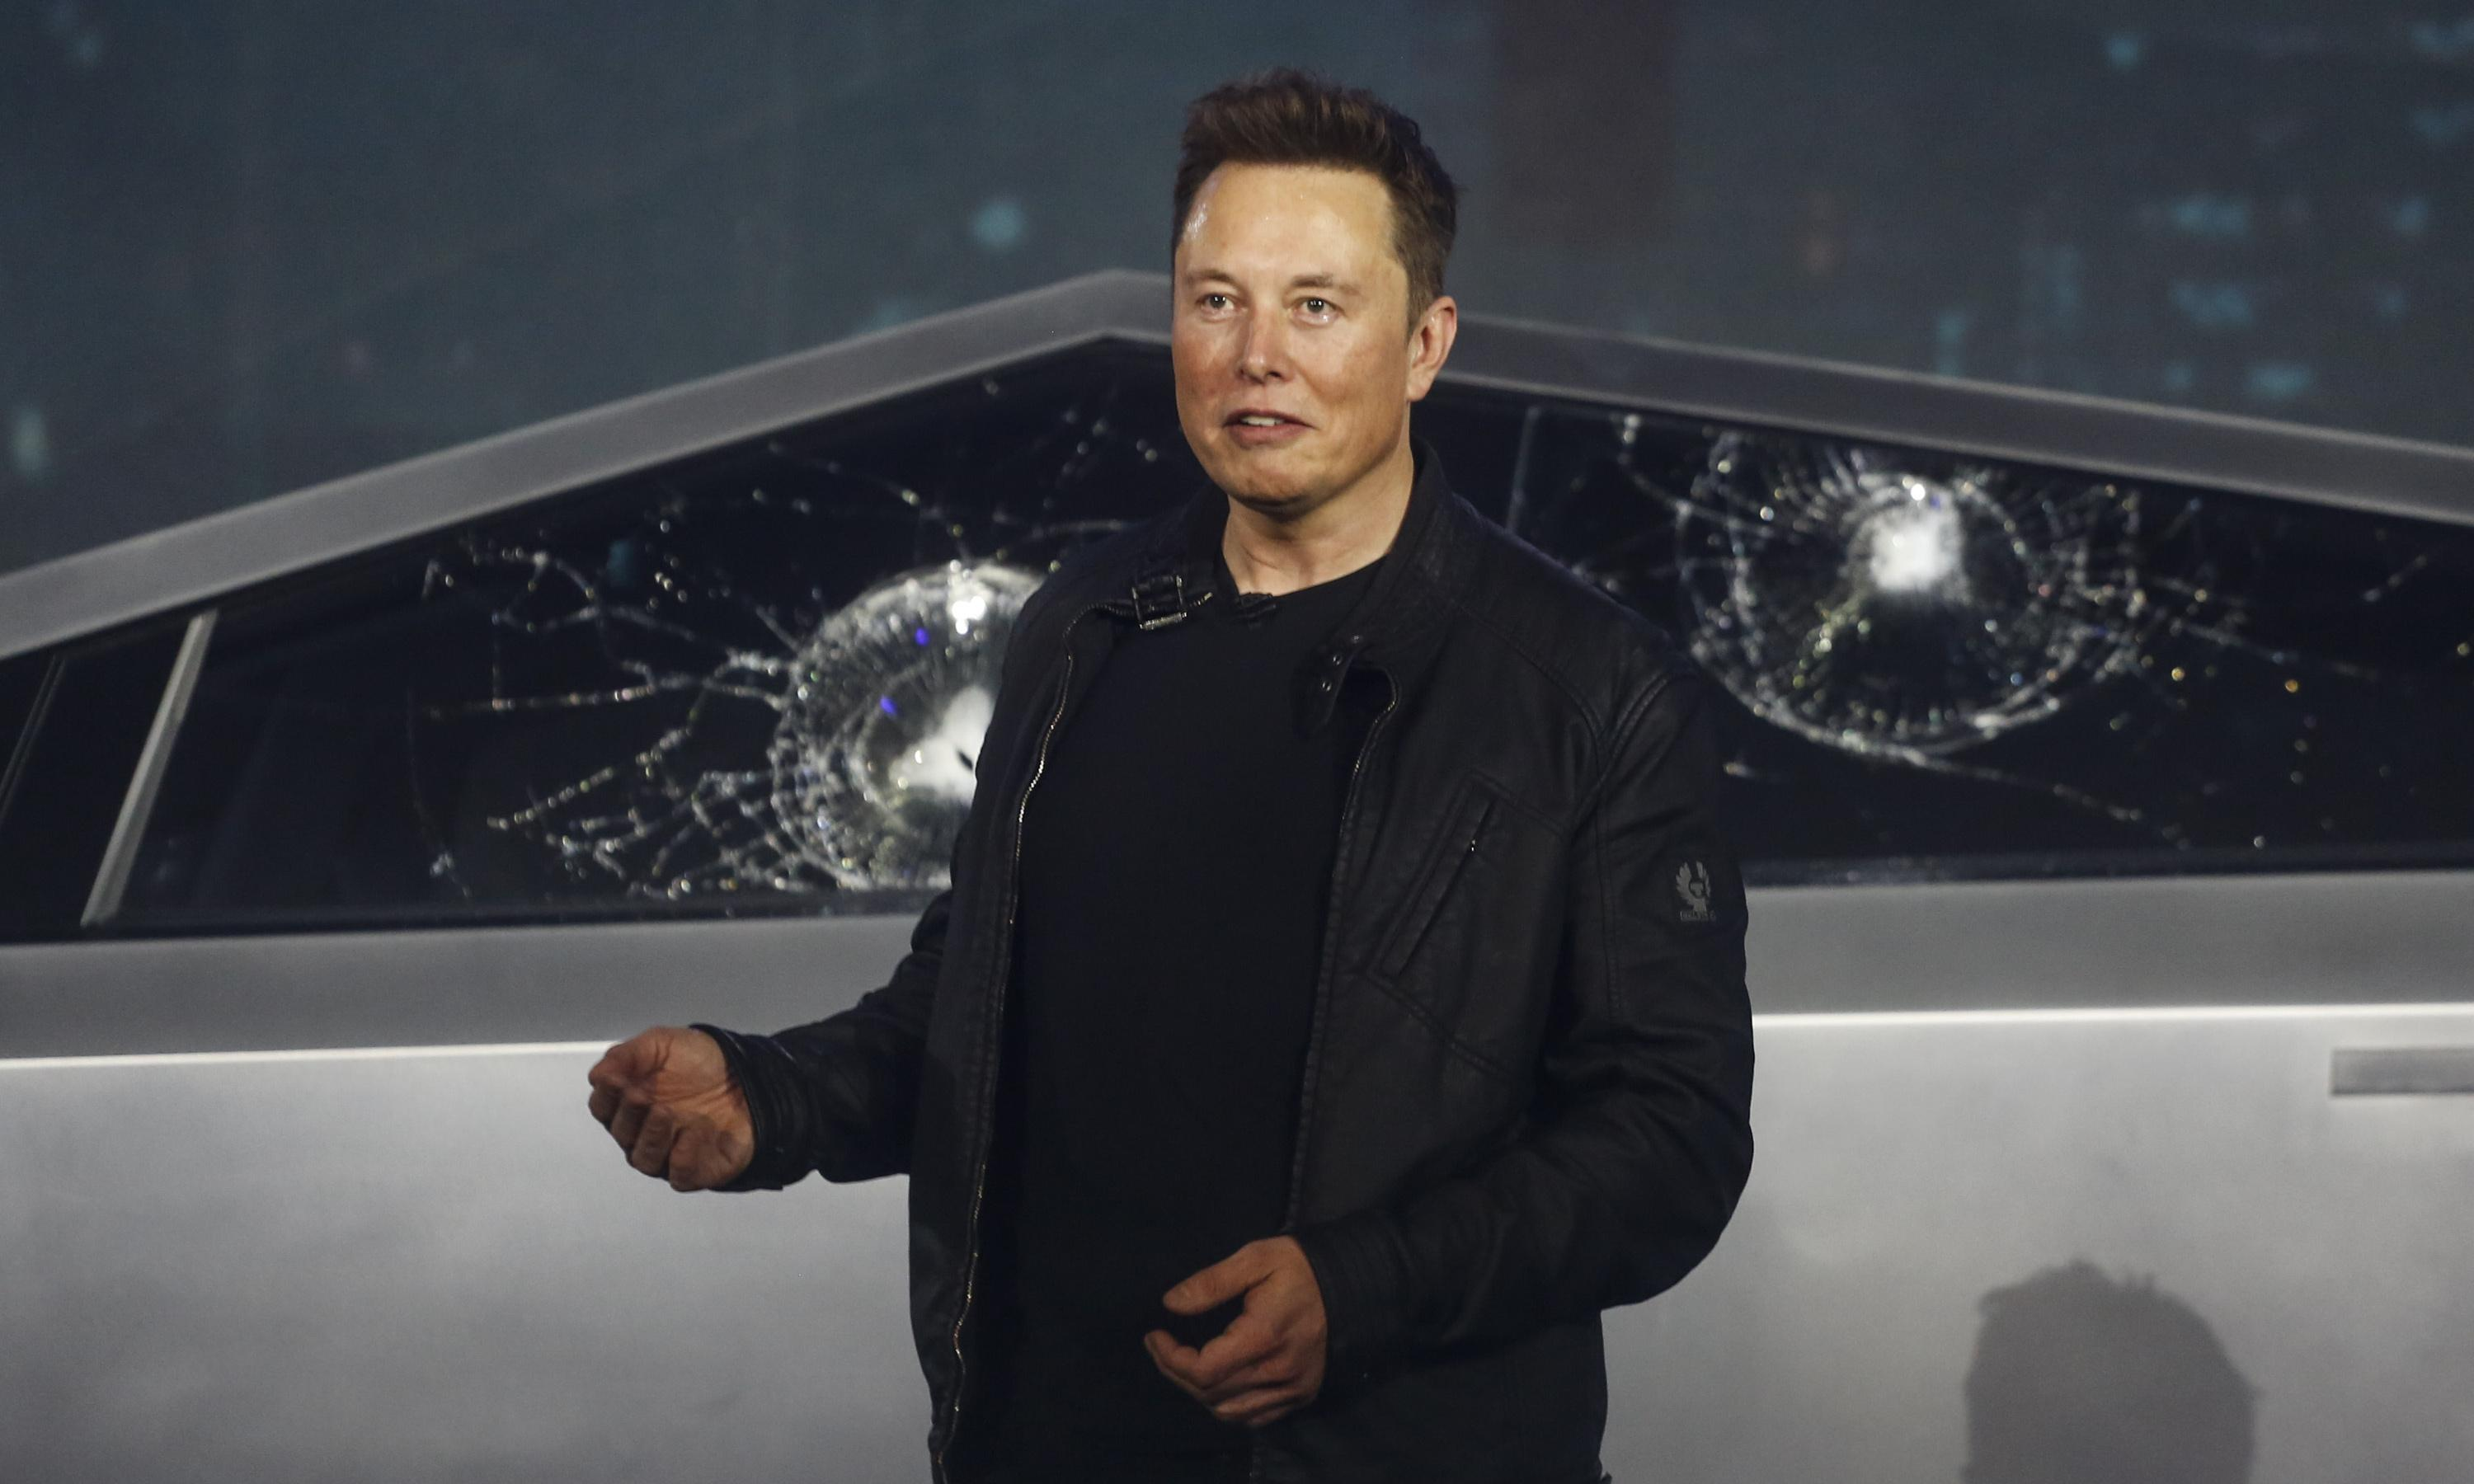 Elon Musk's net worth plunges $768m in a day after cybertruck fiasco